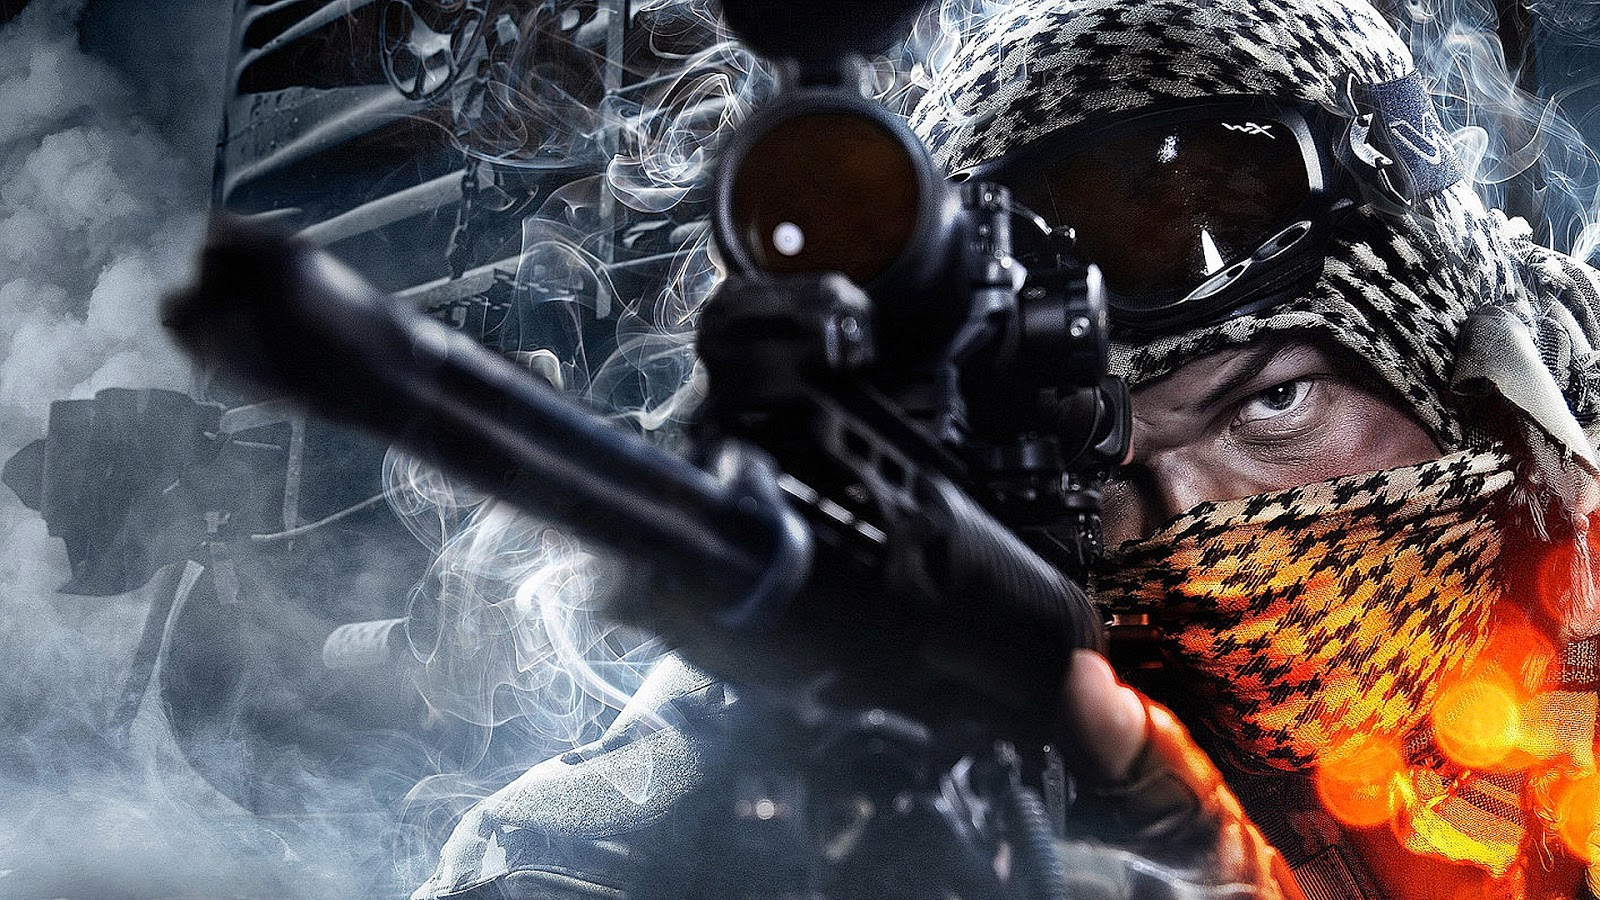 Battlefield 4 Recon Sniper Wallpaper Game Pictures And